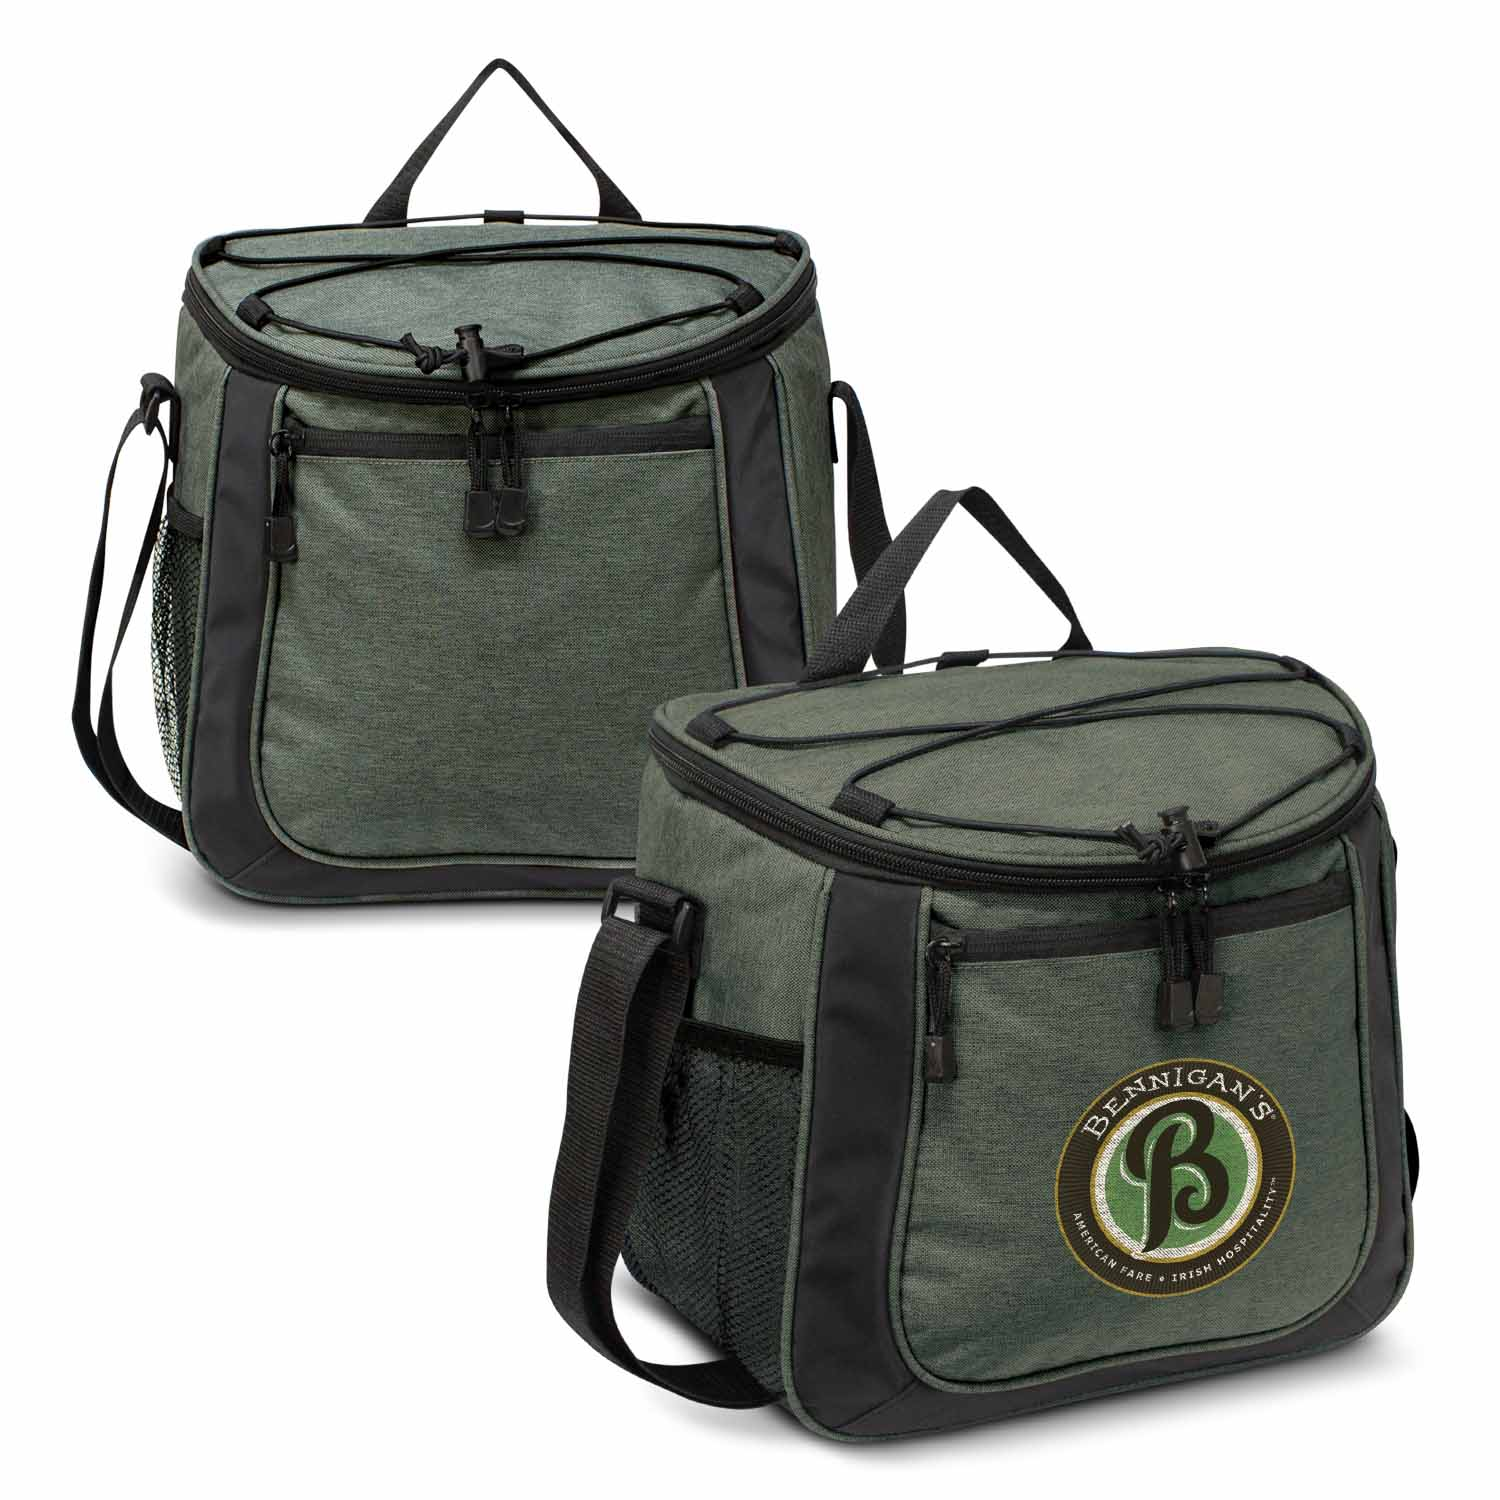 Custom Elite Aspiring Cooler Bags in Perth